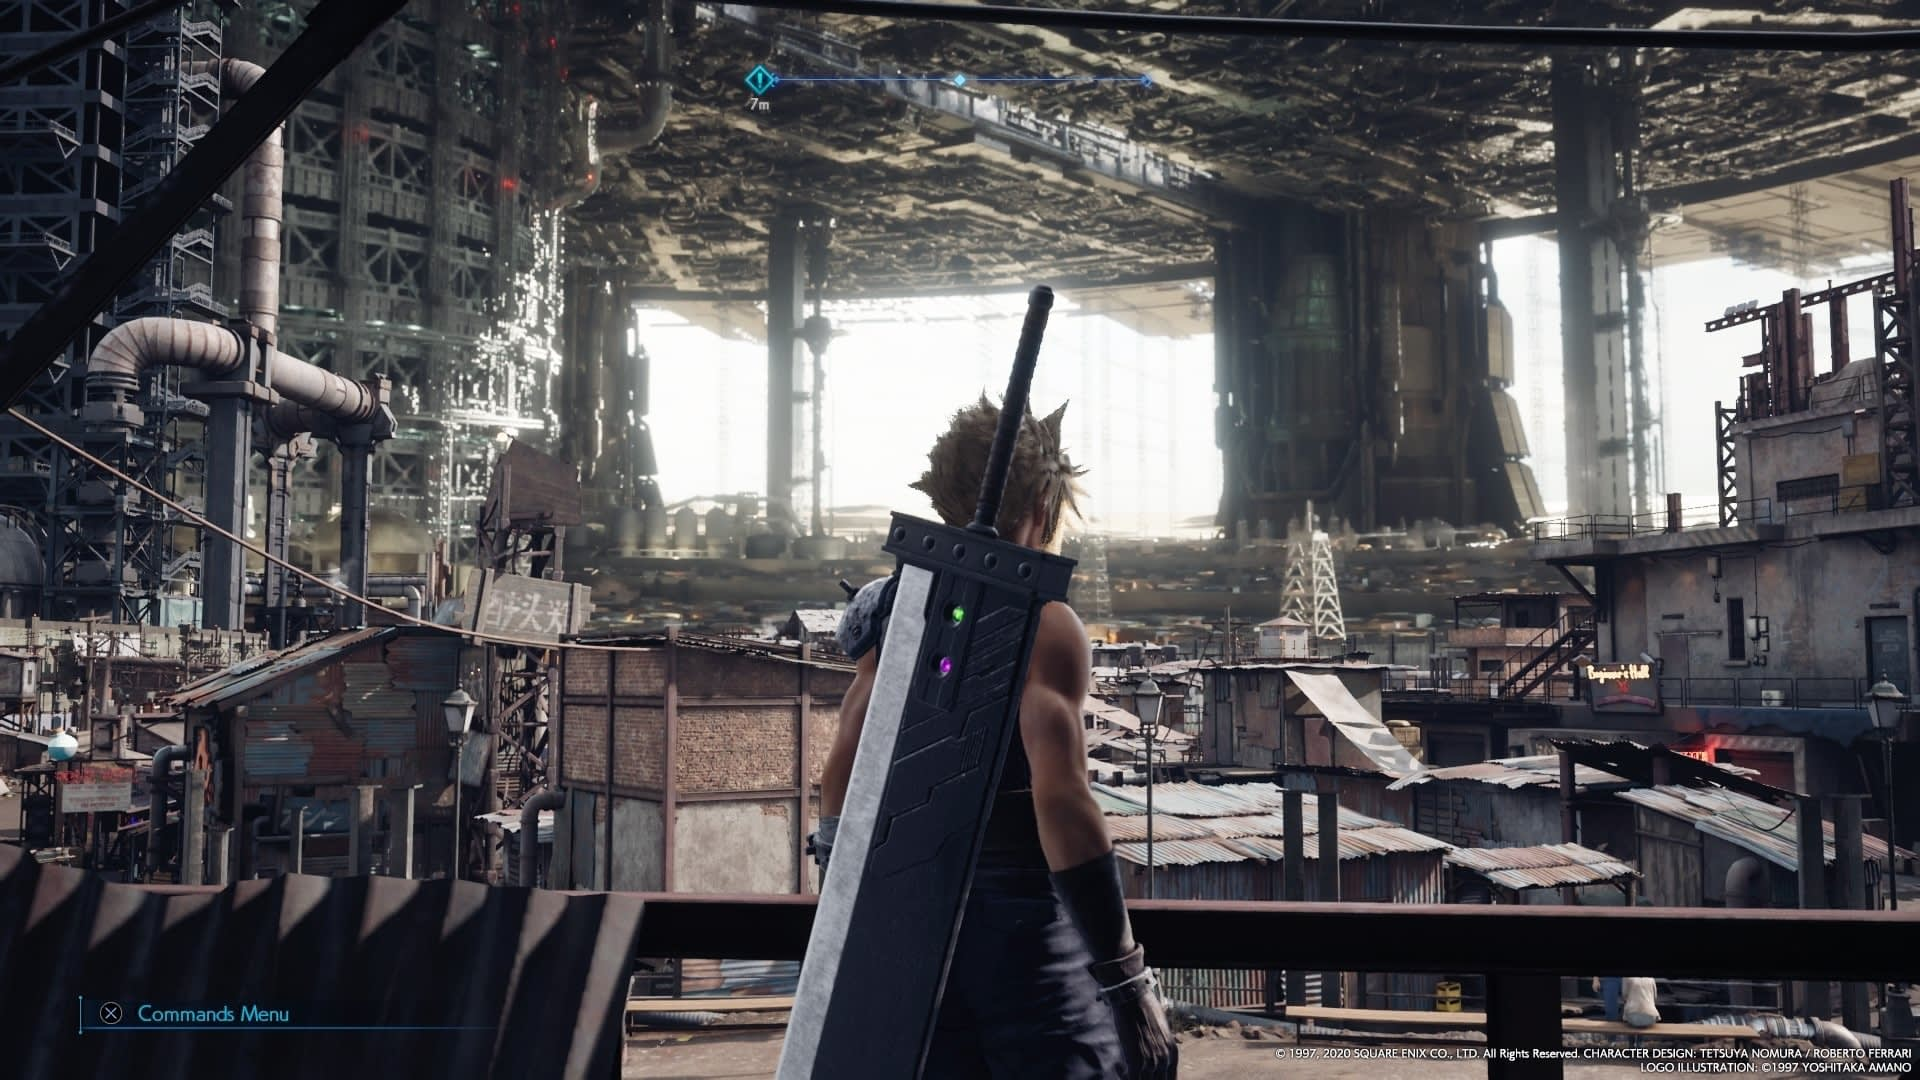 Free Games on PlayStation Plus: Final Fantasy 7 Remake